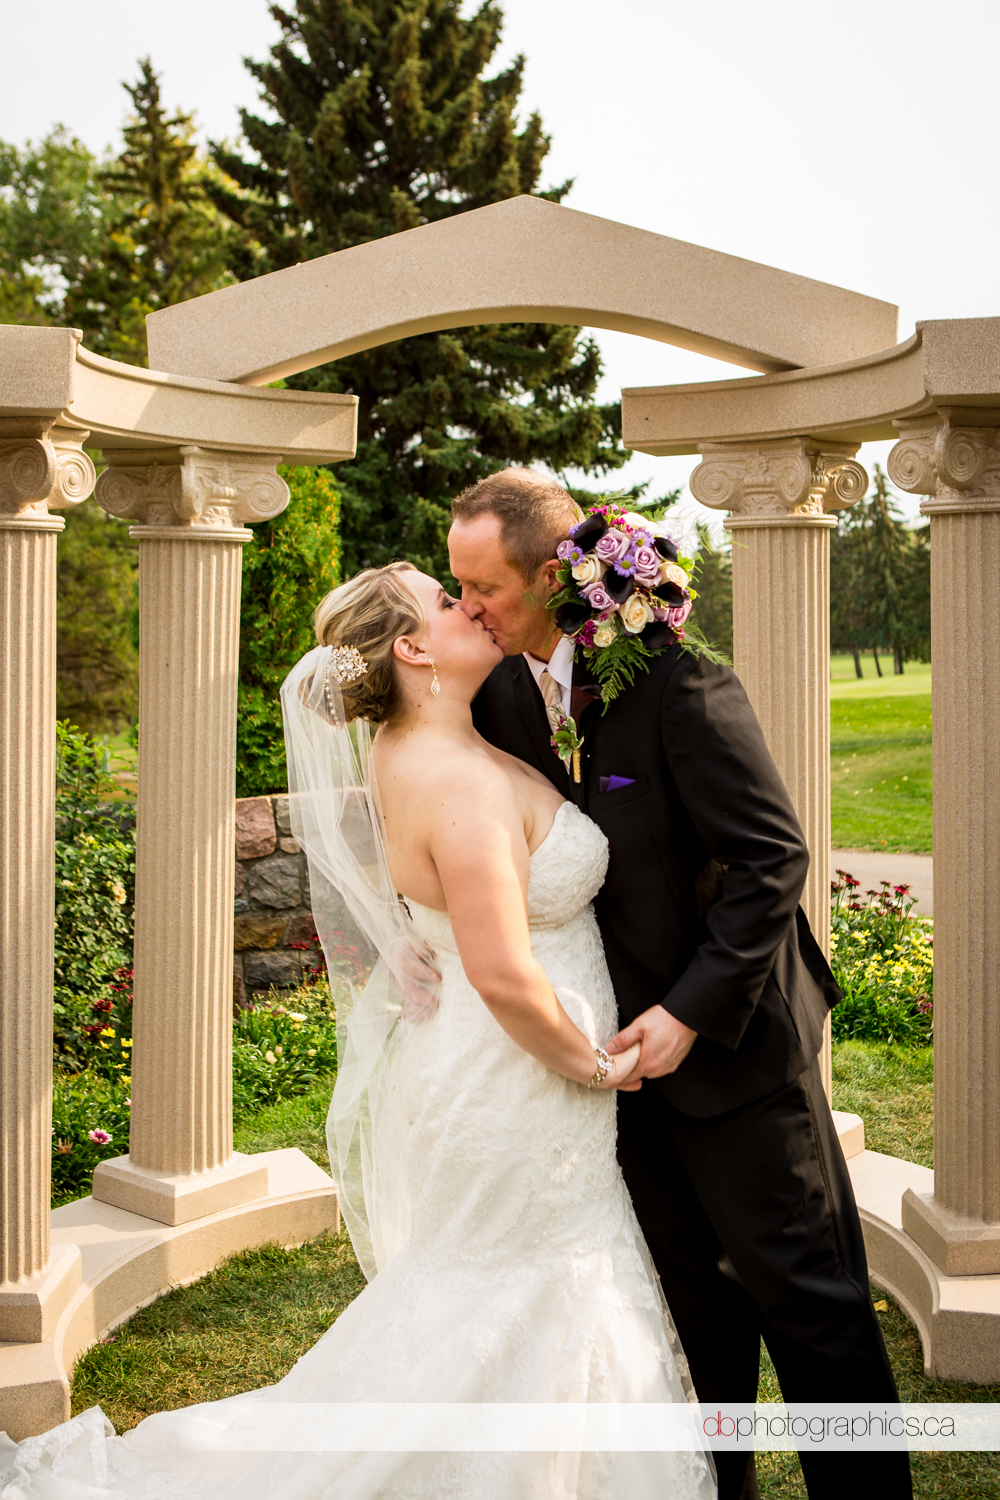 Lauren & Tim's Wedding - 20150829 - 0722.jpg